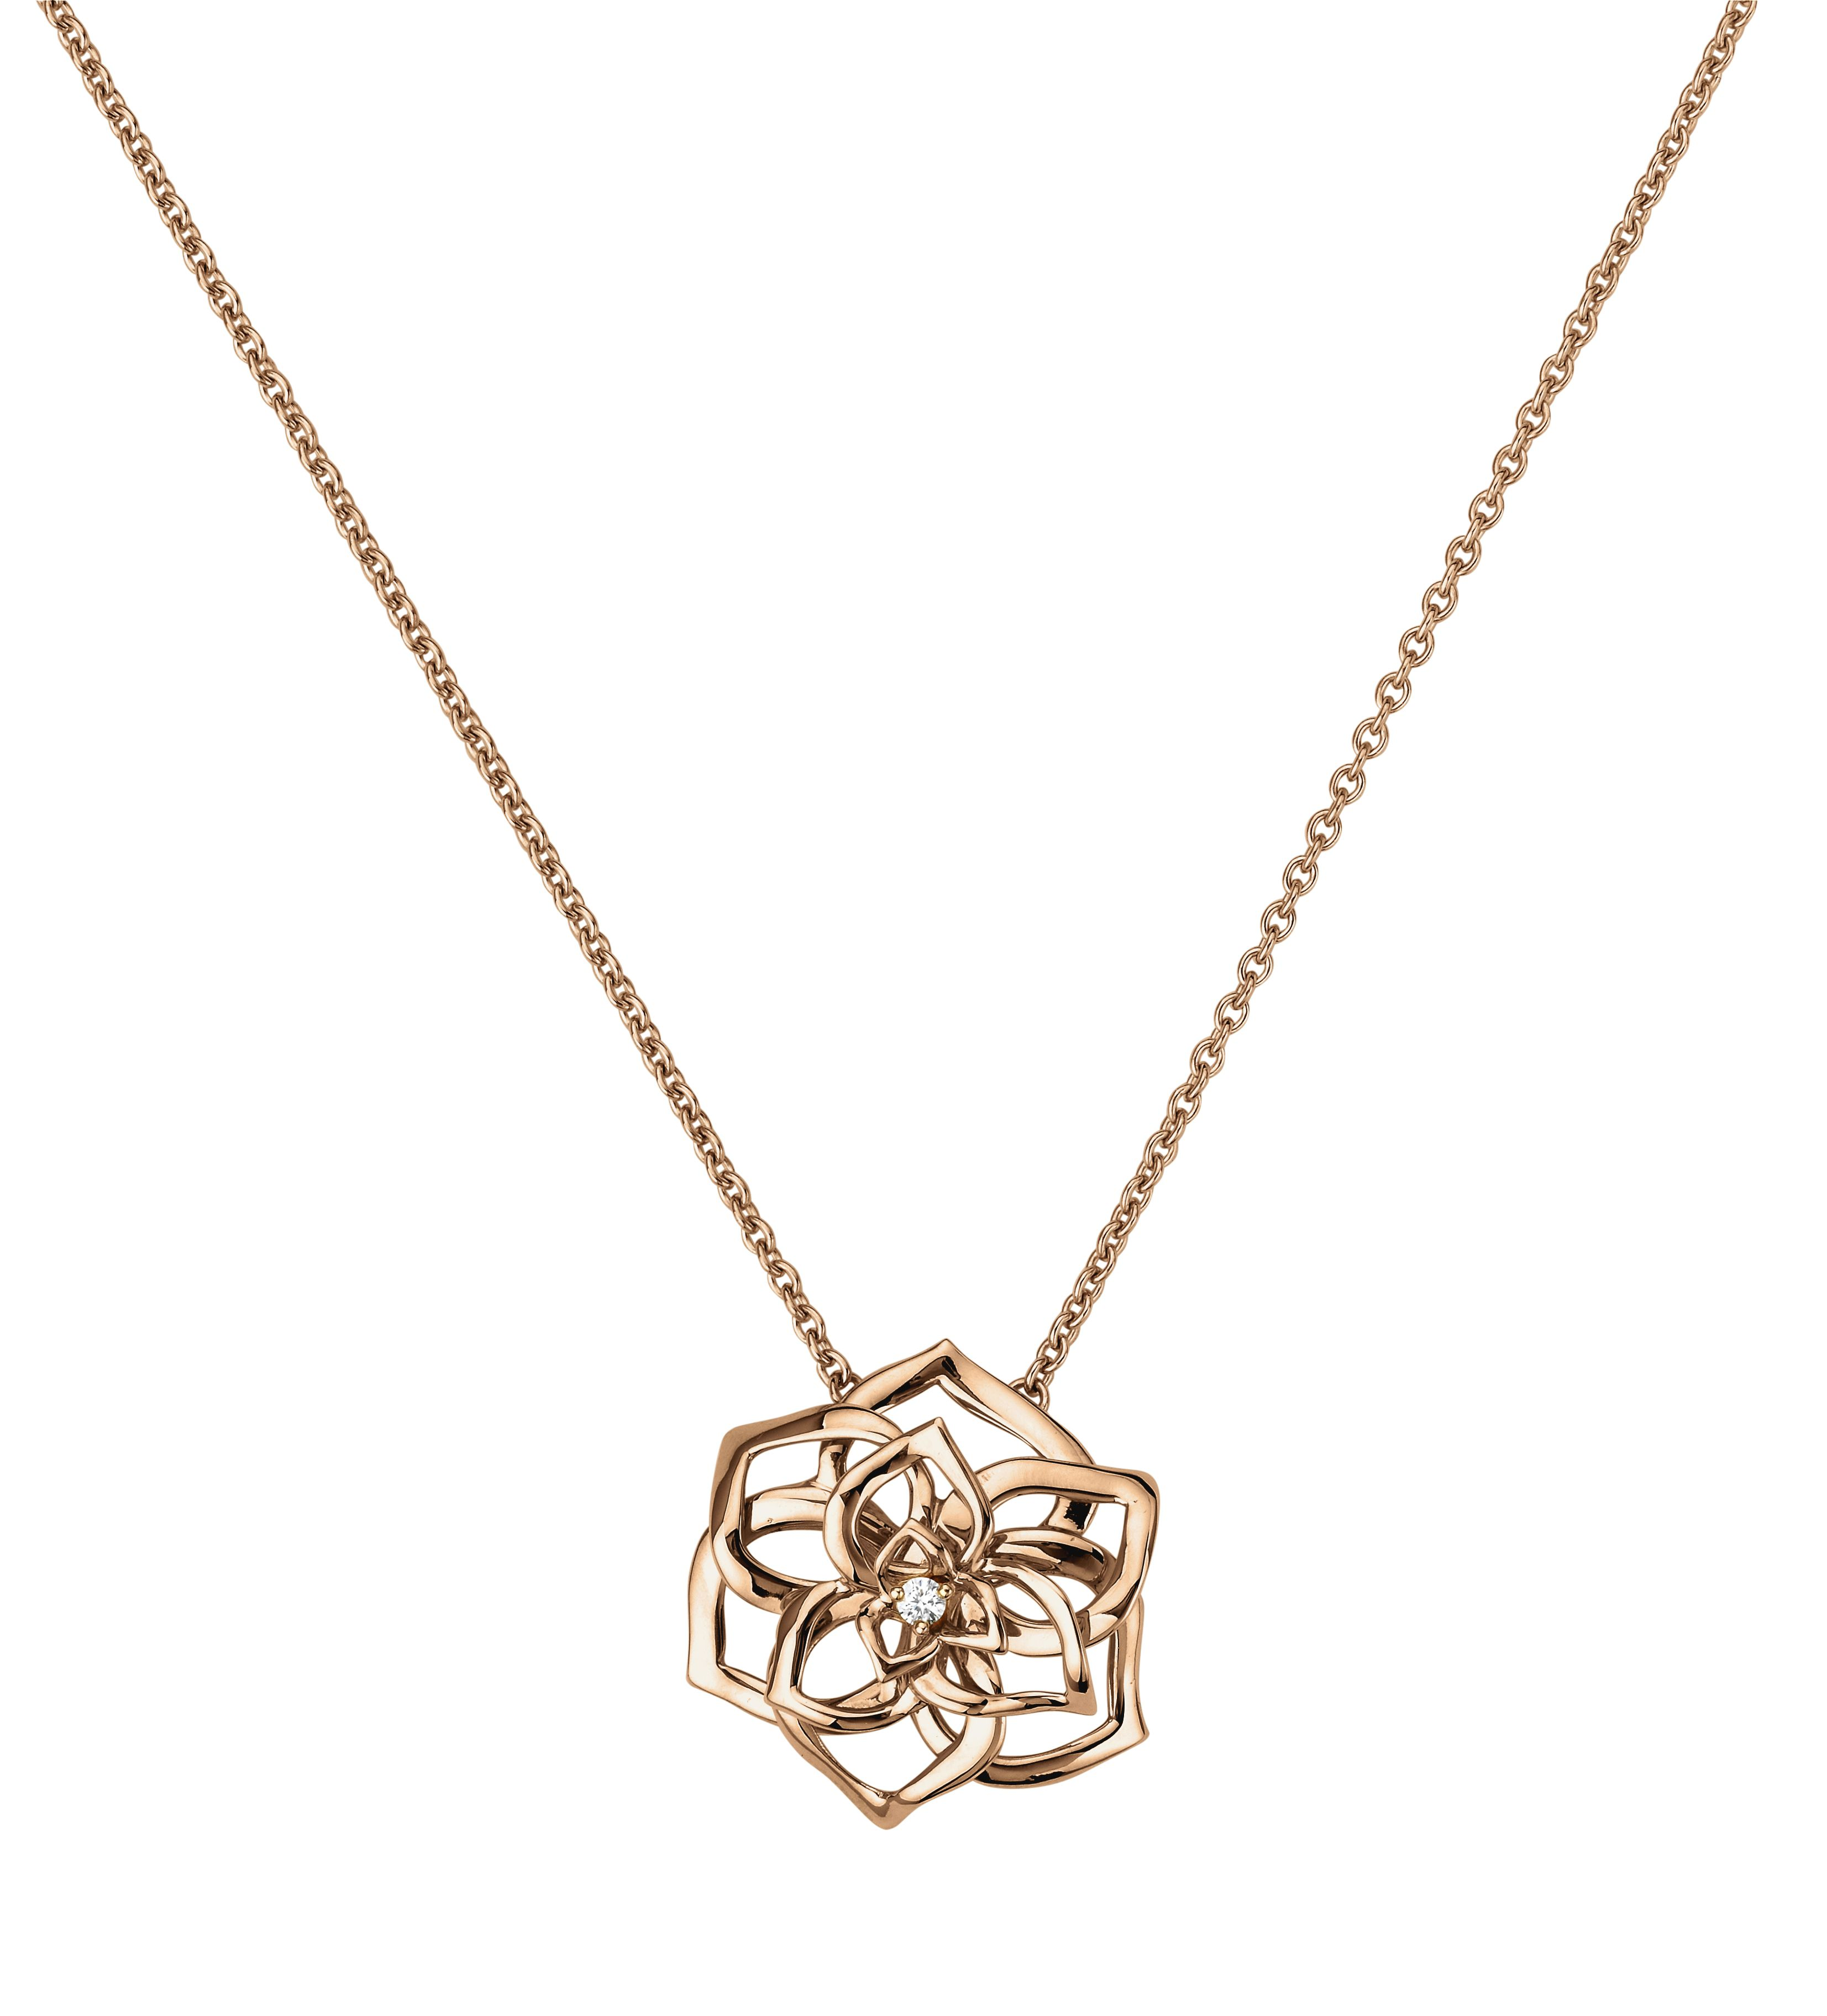 Piaget rose pendant in k rose gold set with one brilliantcut